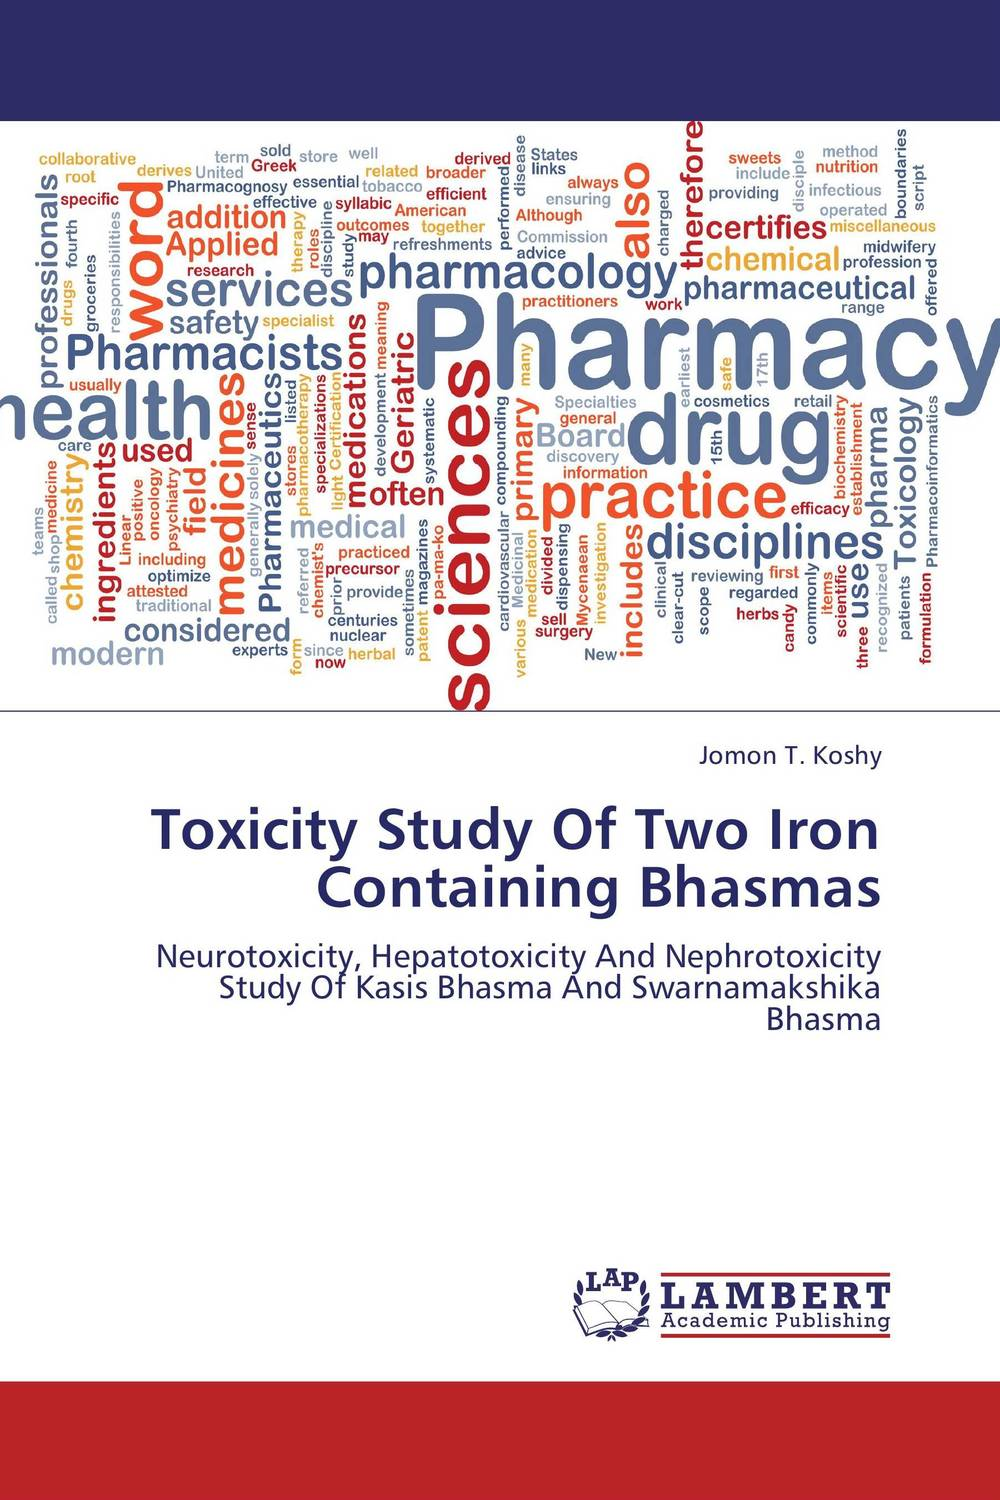 Toxicity Study Of Two Iron Containing Bhasmas